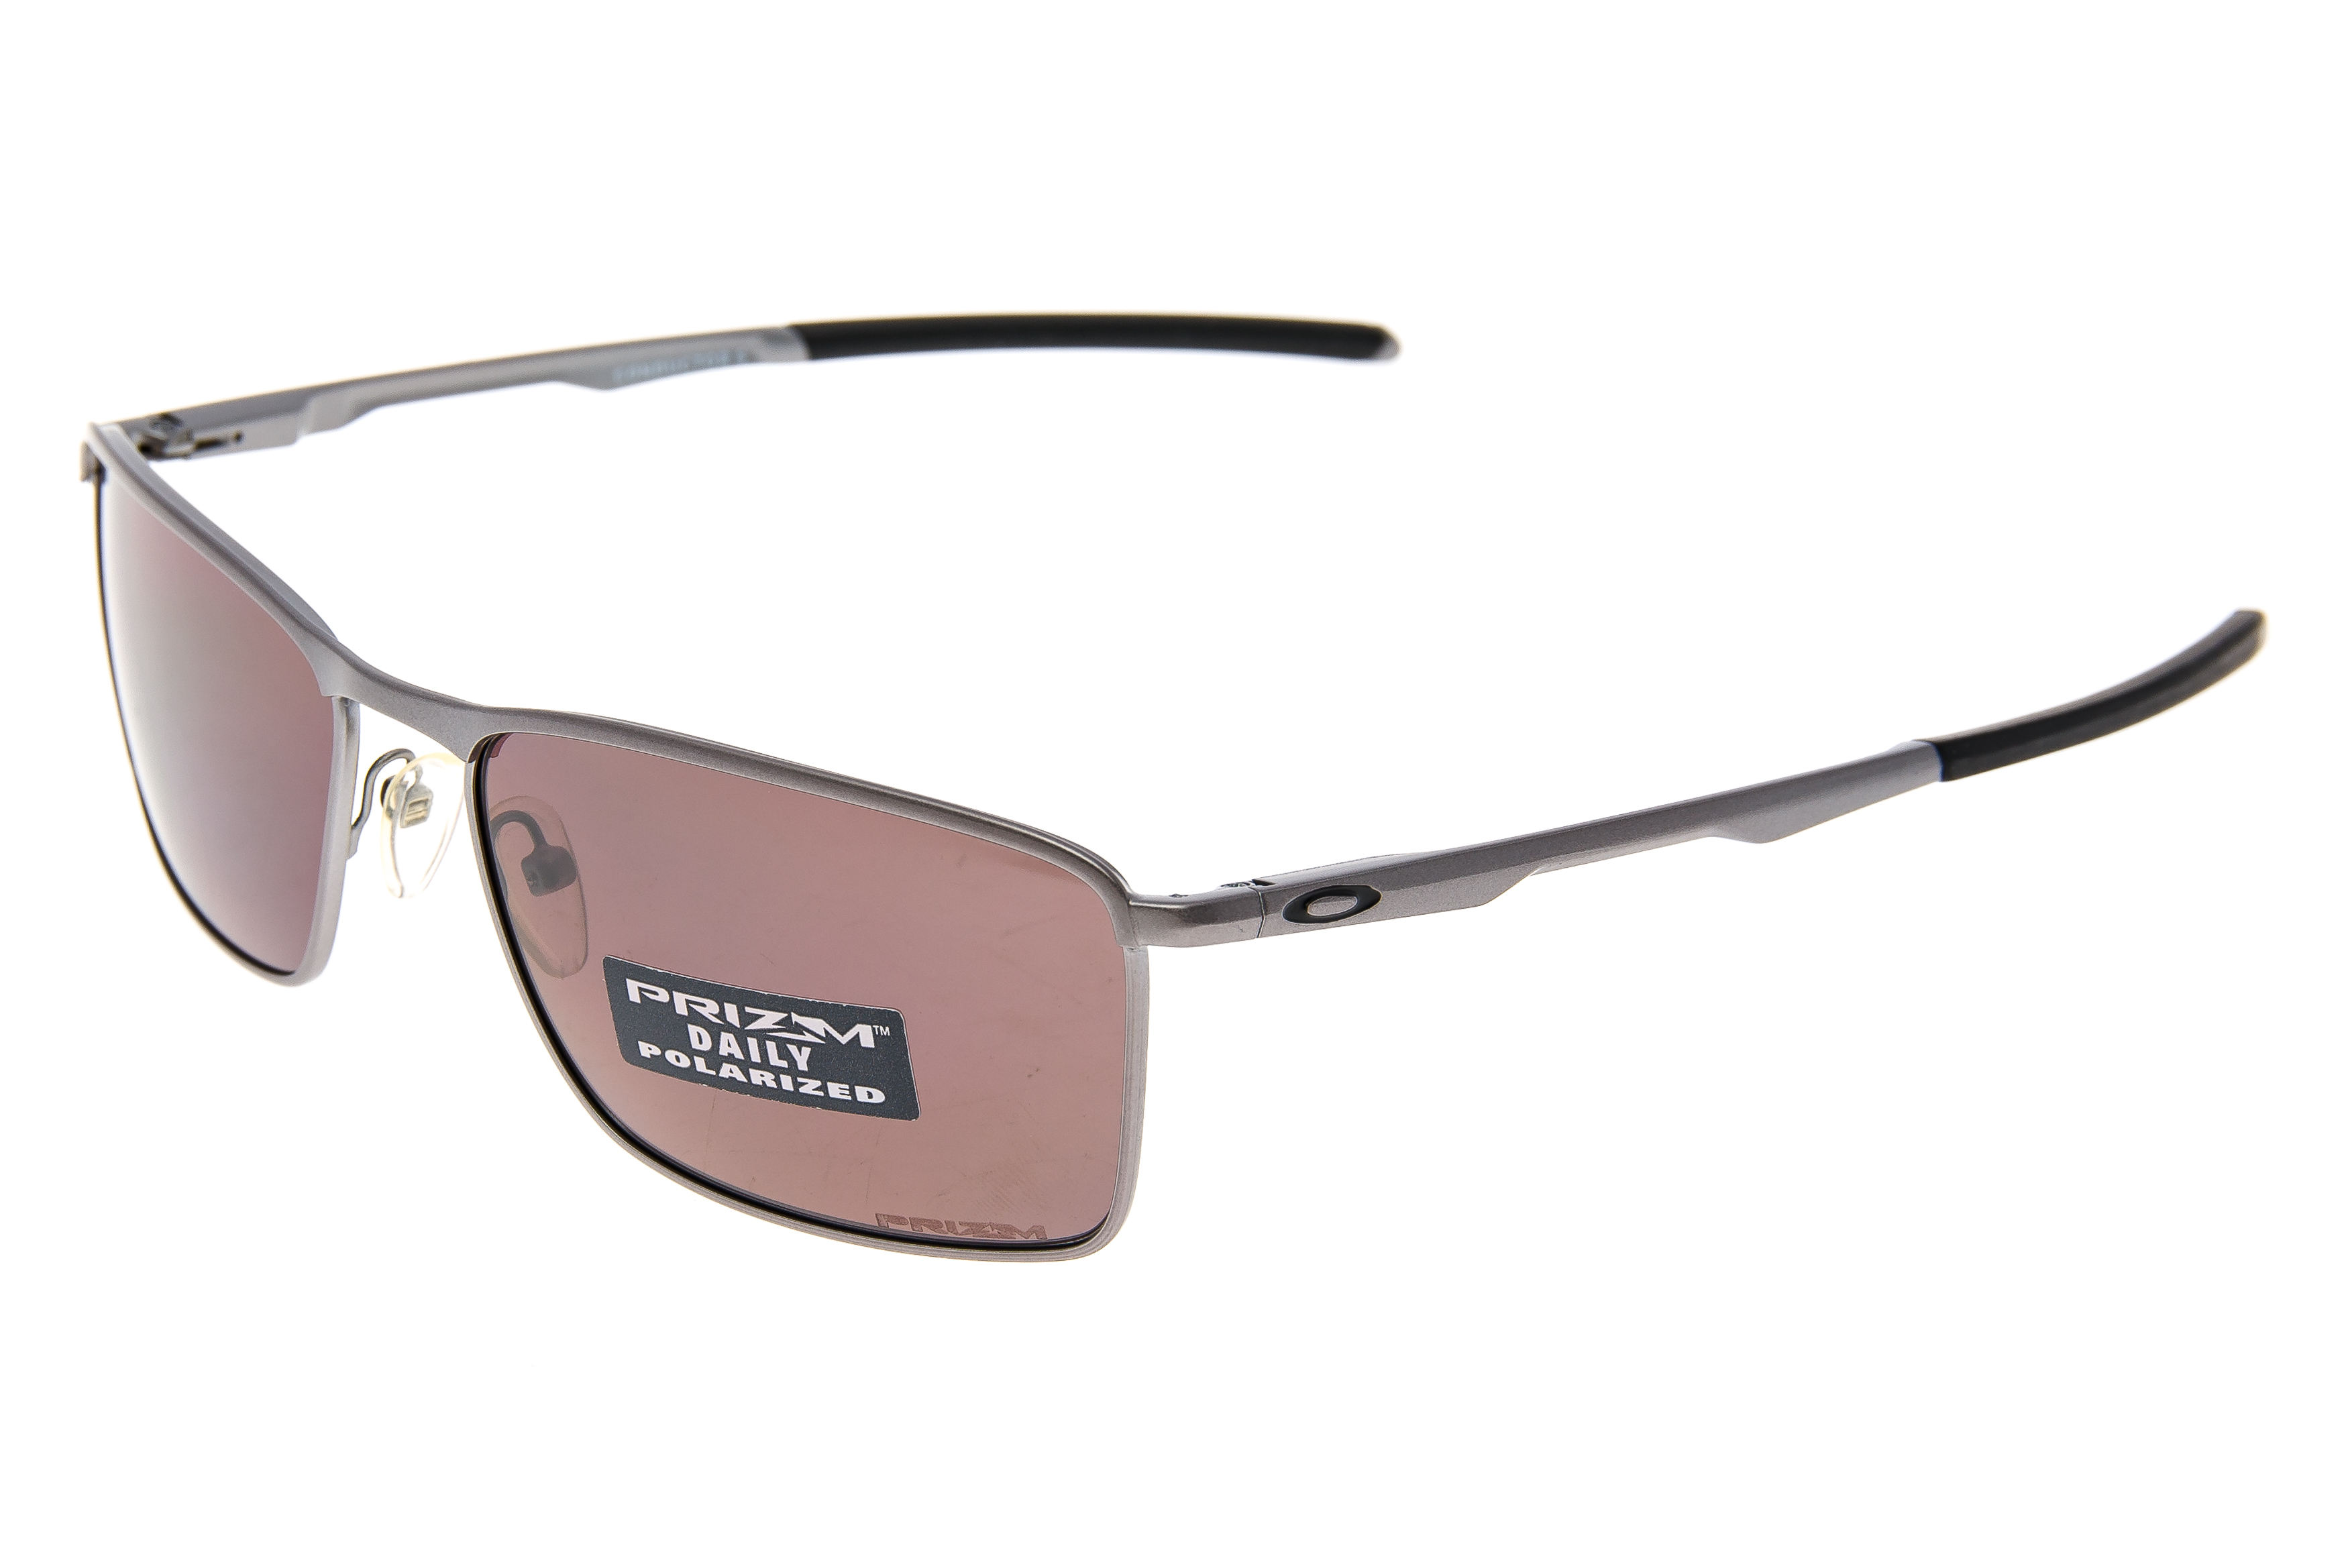 5561fcbee01 Details about Oakley Conductor 6 Sunglasses Silver Frame Prizm Daily  Polarized Lens